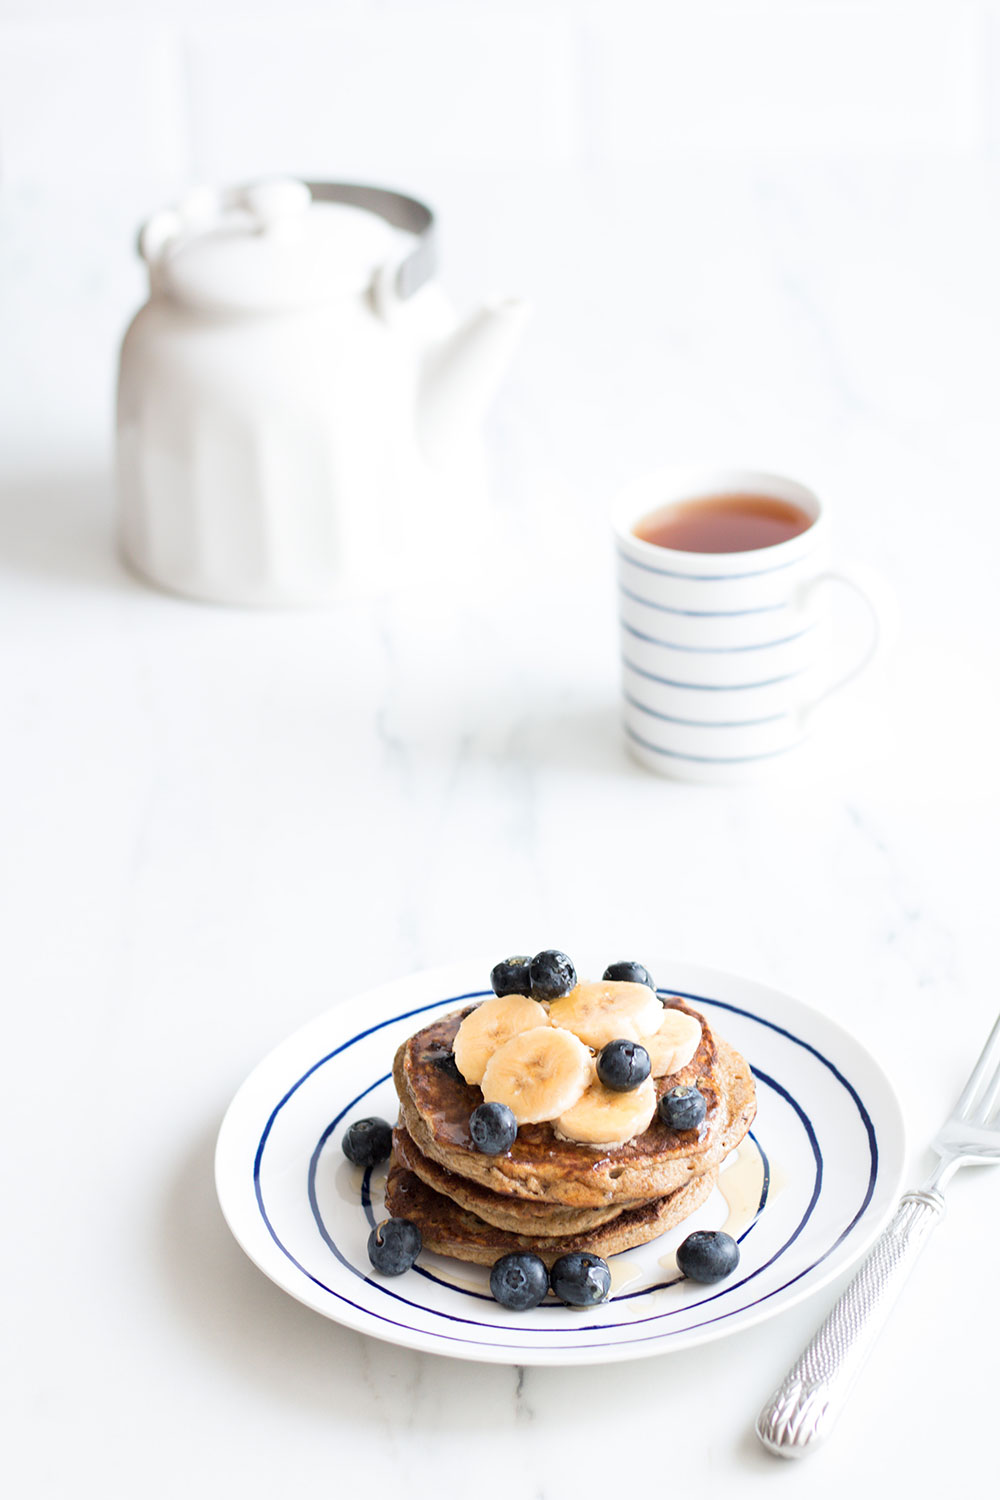 Blueberry Banana Pancakes Recipe: Yummy, gluten-free, high-protein, healthy and low-calorie! https://www.spotebi.com/recipes/blueberry-banana-pancakes/